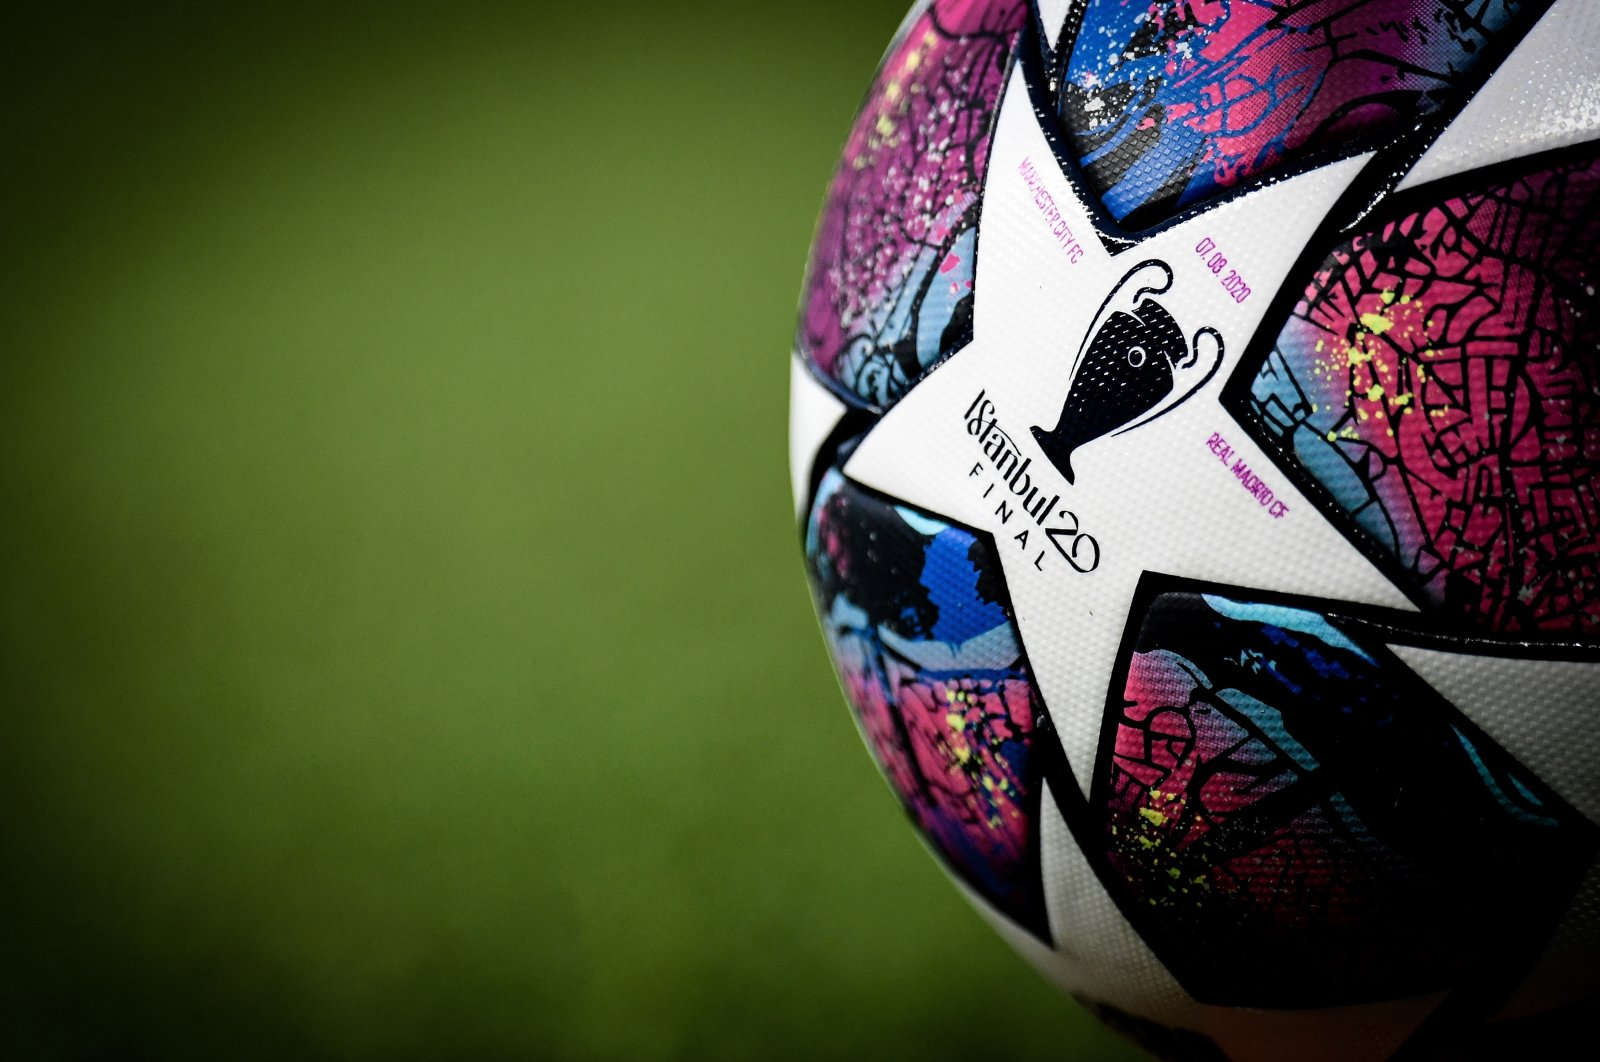 The official Adidas match ball on display during the UEFA Champions League round of 16, second leg soccer match between Manchester City and Real Madrid in Manchester, Britain, Aug. 7, 2020. (EPA Photo)